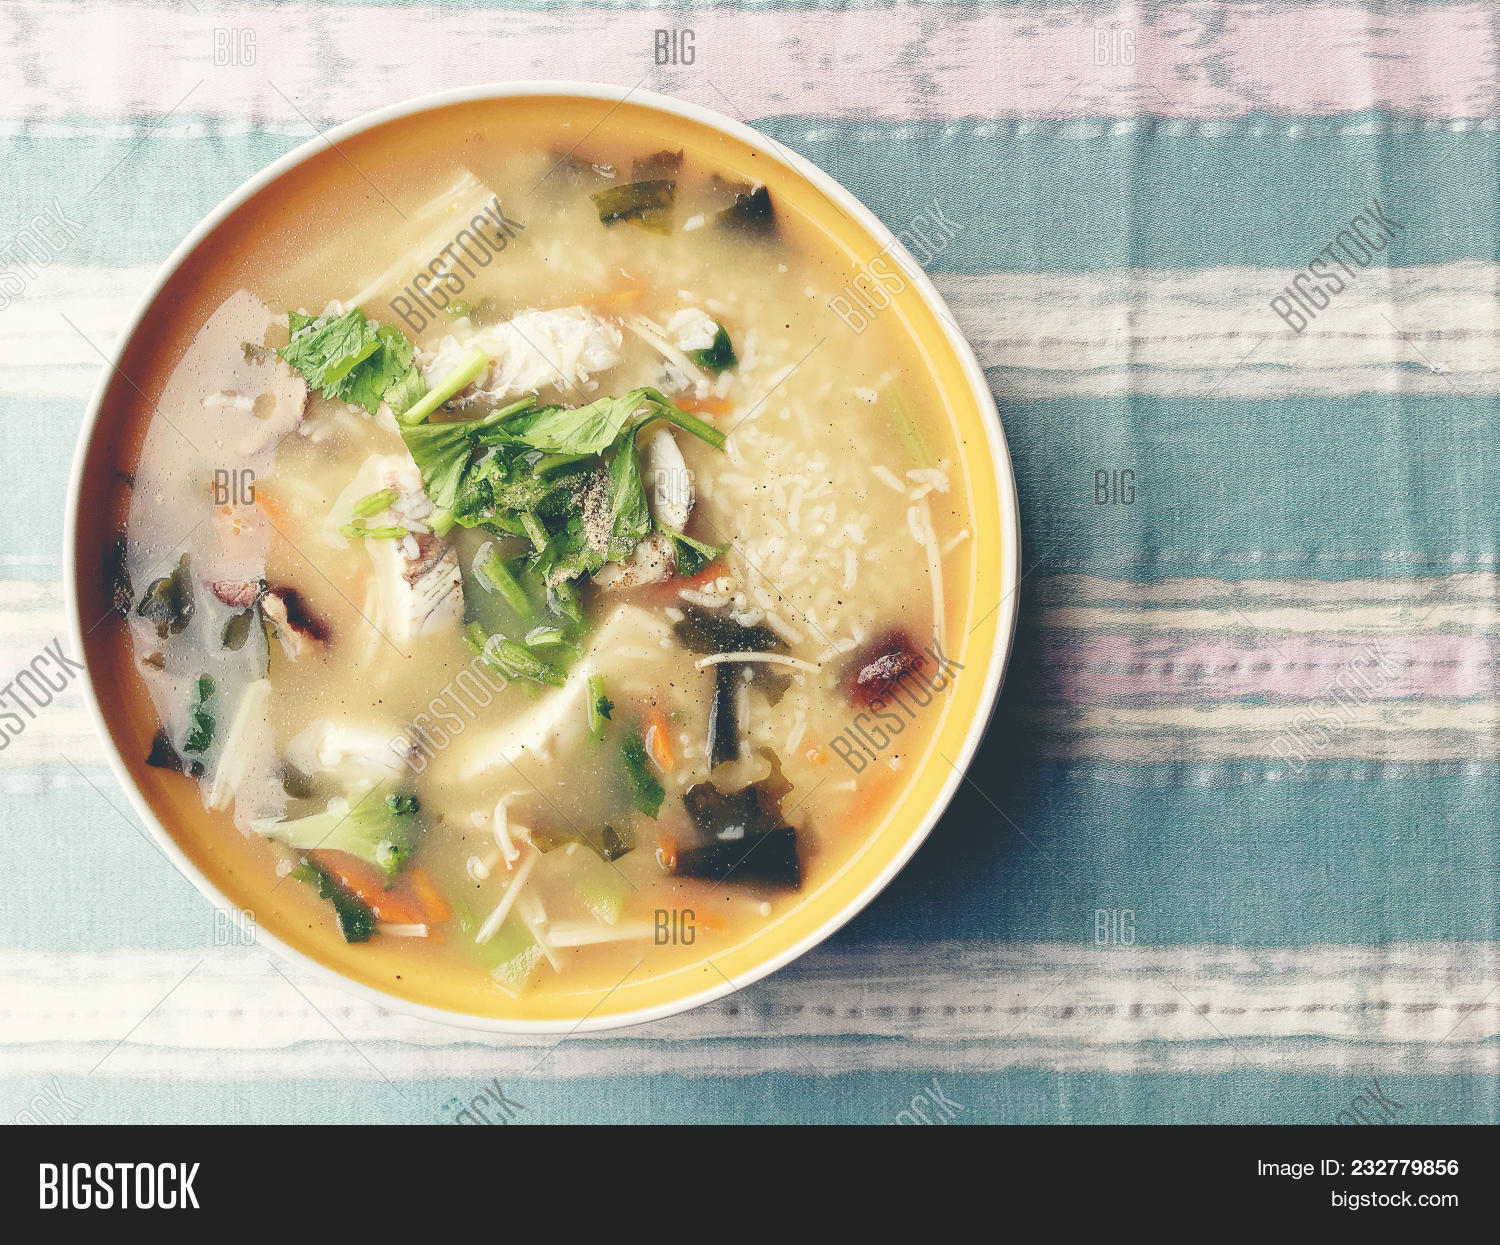 Homemade Rice Soup Image & Photo (Free Trial) | Bigstock